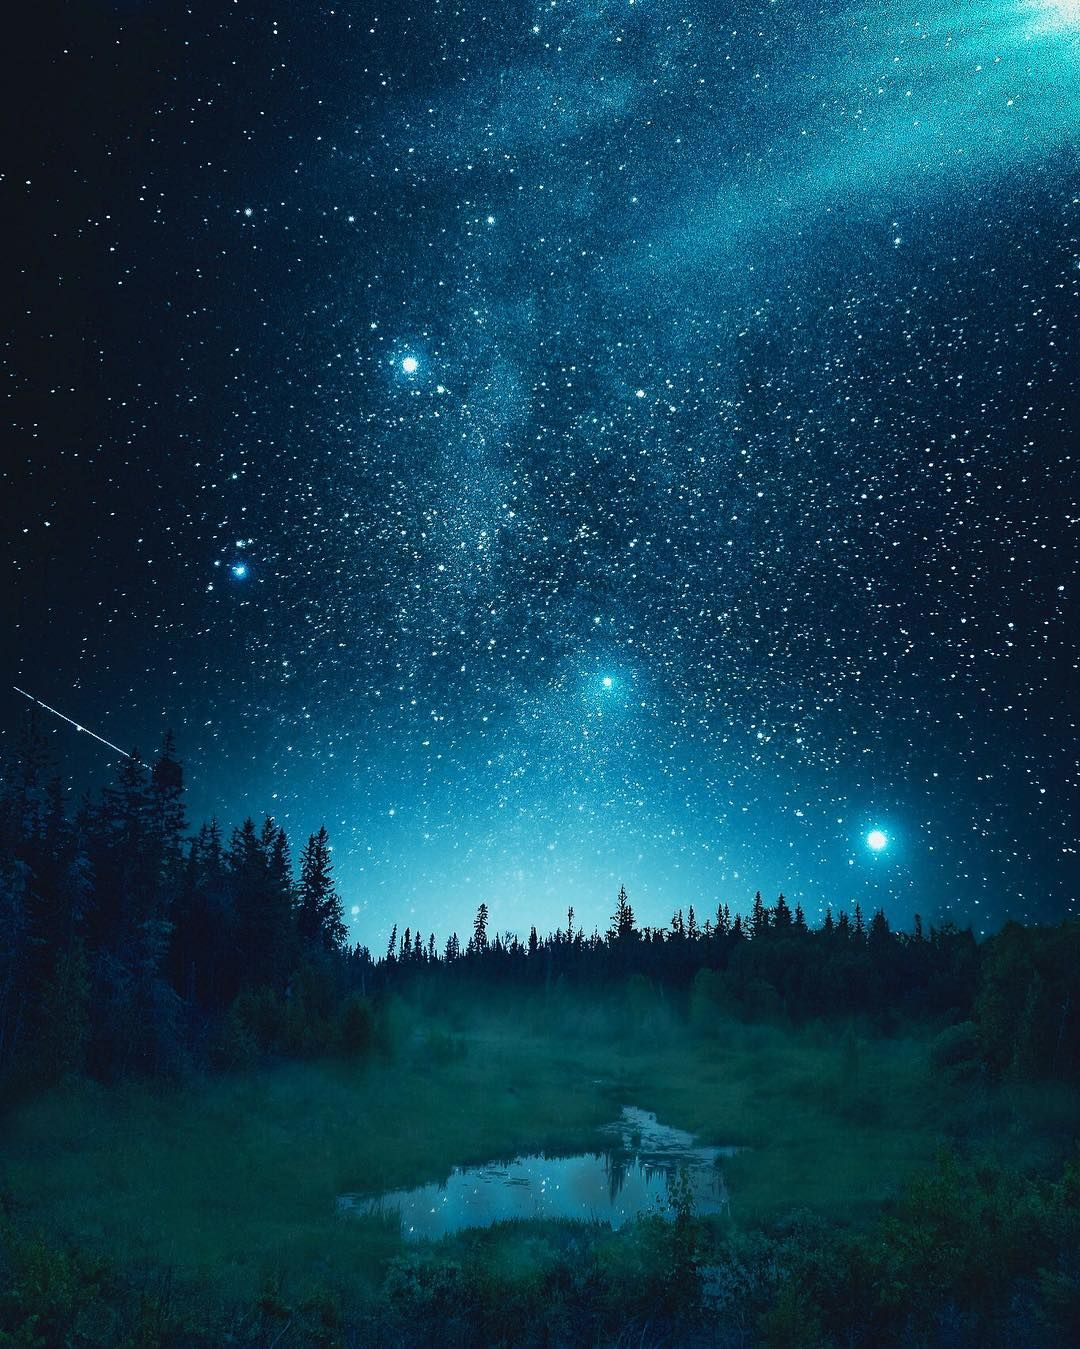 Incredible Night Landscape Photography By Andre Brandt Universo